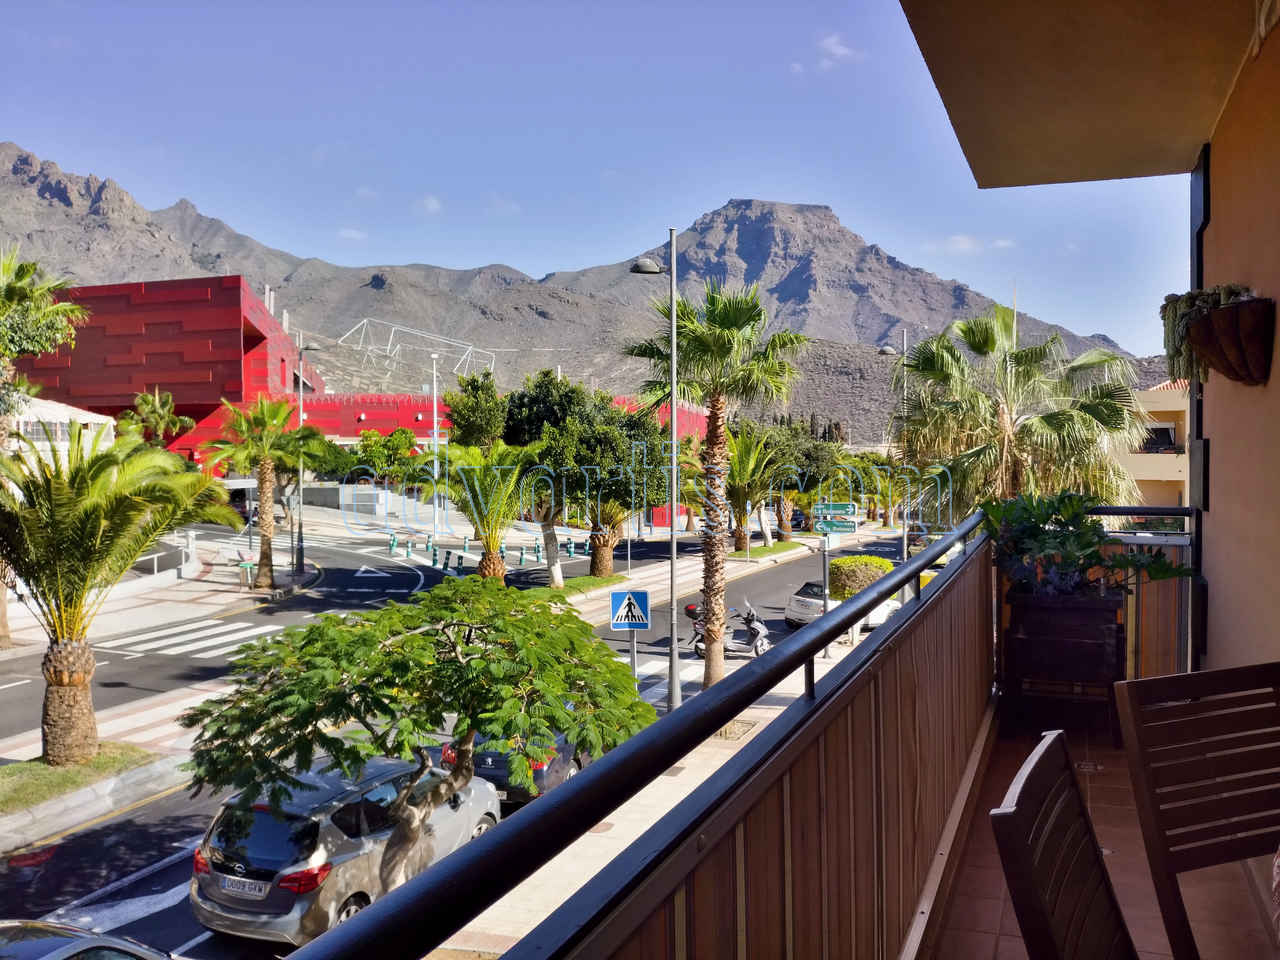 2 bedroom apartment for sale in Adeje Tenerife €250.000